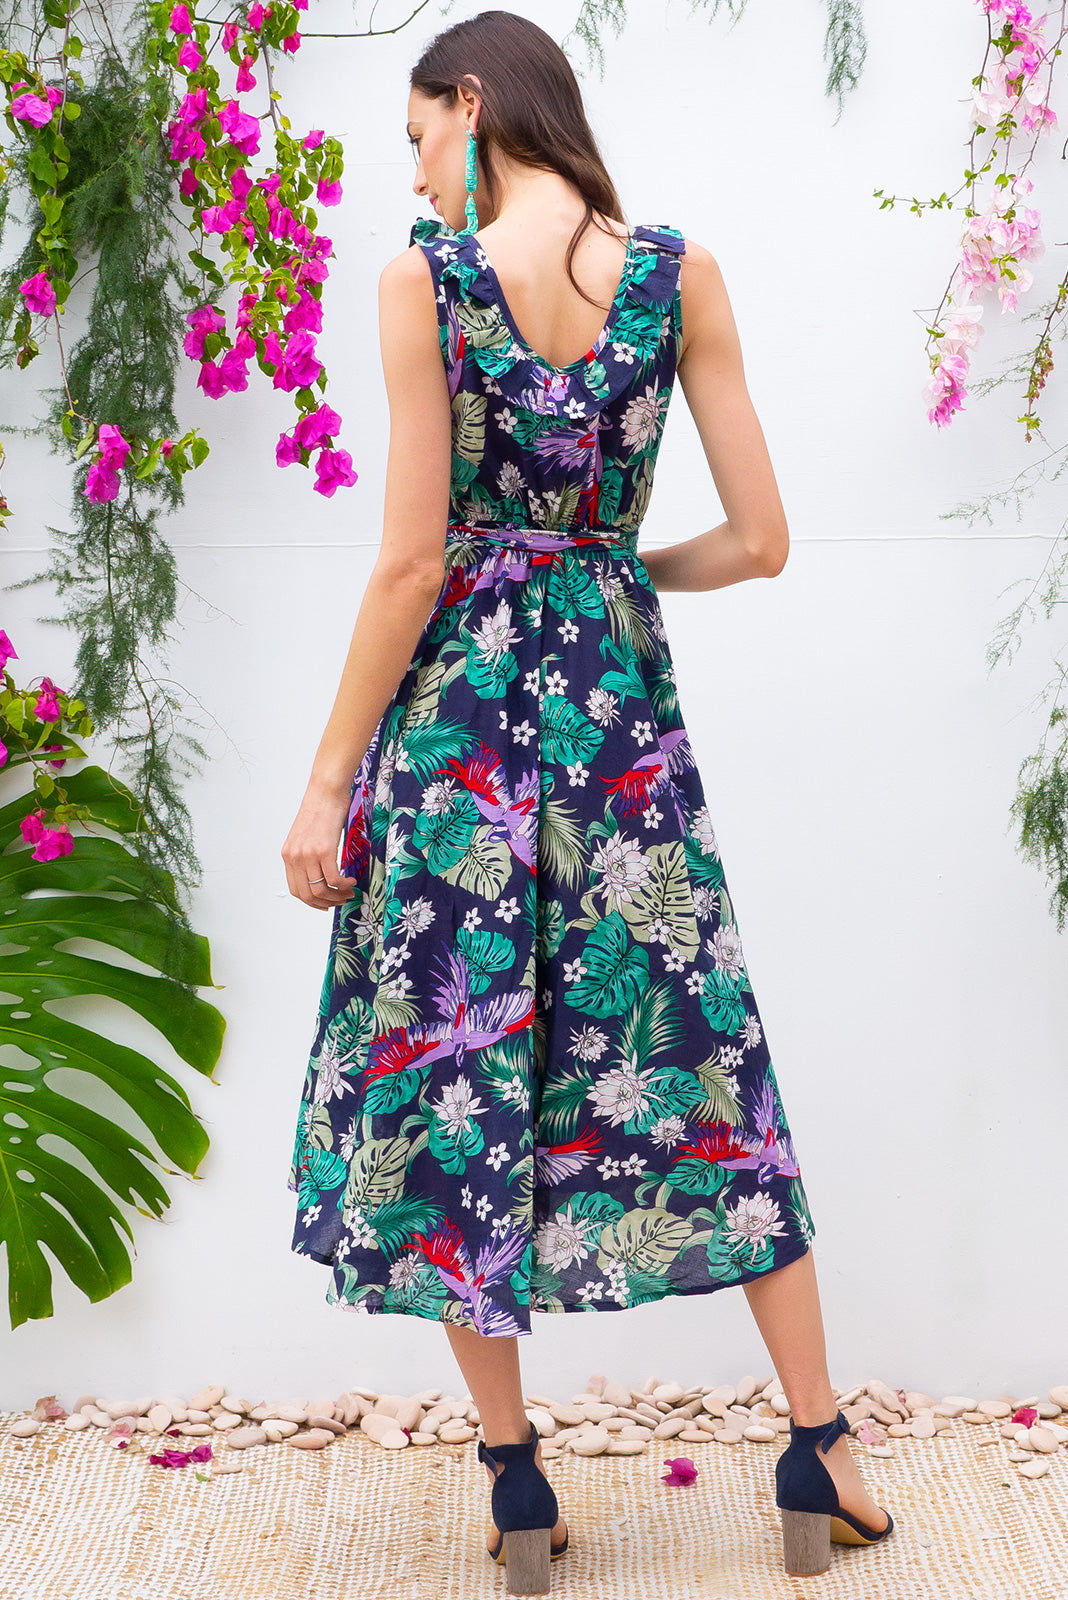 Pablo Amazonian Navy Wrap Dress, sleePablo Amazonian Navy Wrap Dress, sleeveless cotton wrap around dress in bright tropical print, adjustable so will fit plus sizesveless cotton wrap around dress in bright tropical print, adjustable so will fit plus sizes